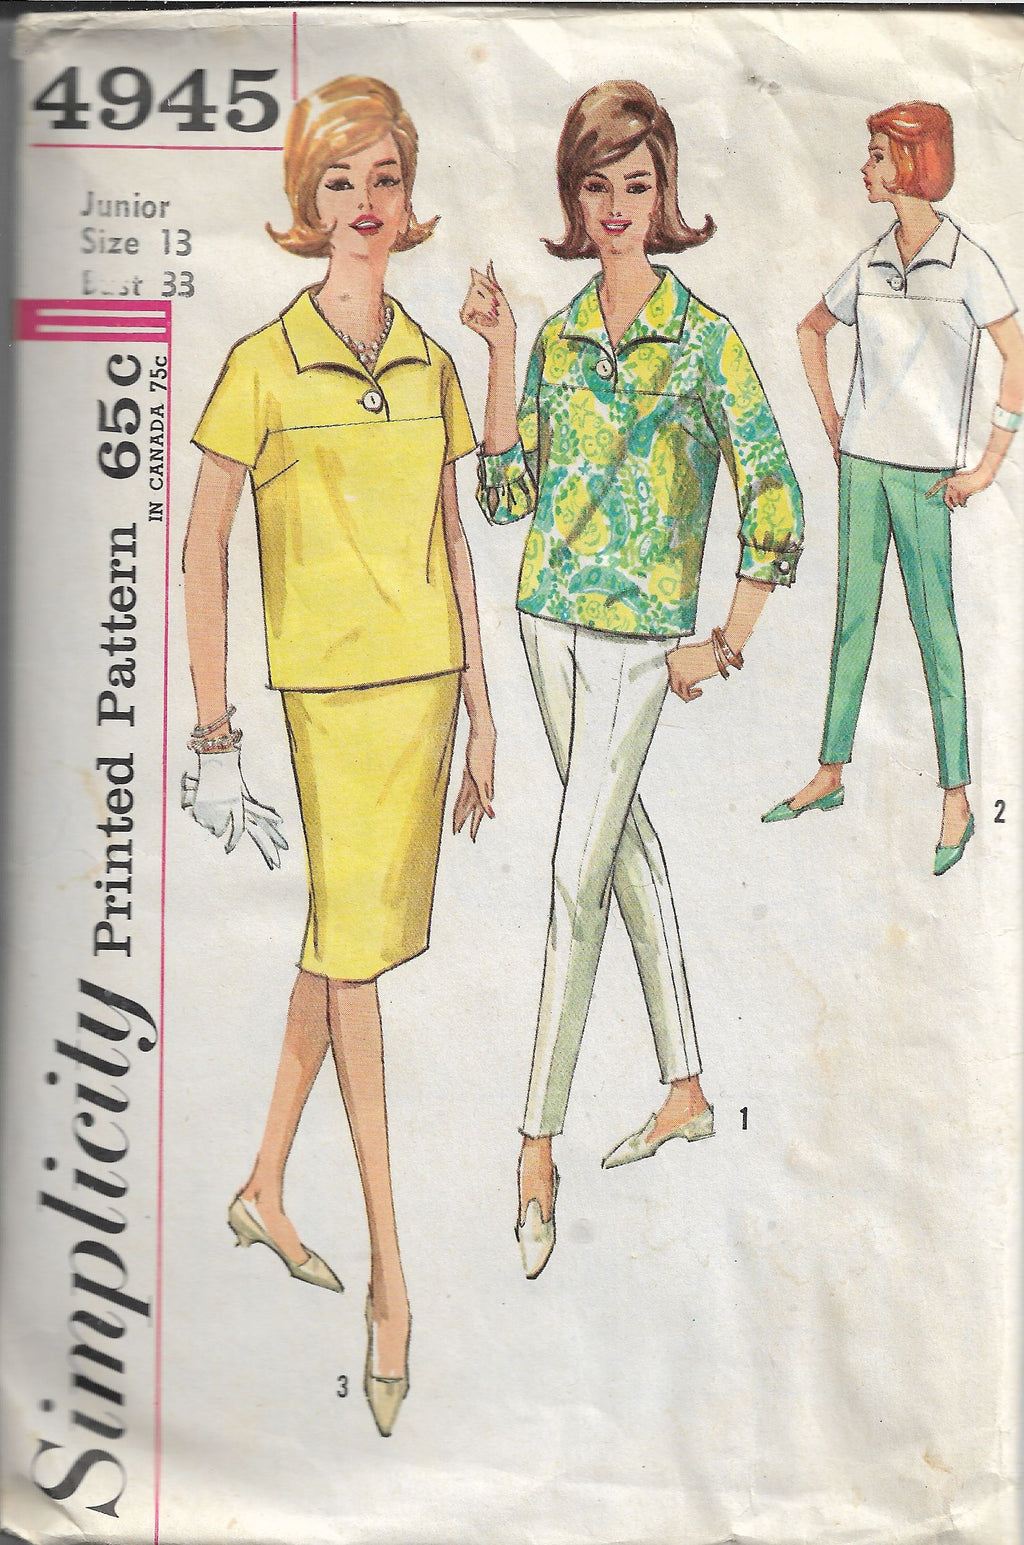 Simplicity 4945 Vintage Sewing Pattern 1960s Ladies Blouse Pants Skirt Junior - VintageStitching - Vintage Sewing Patterns